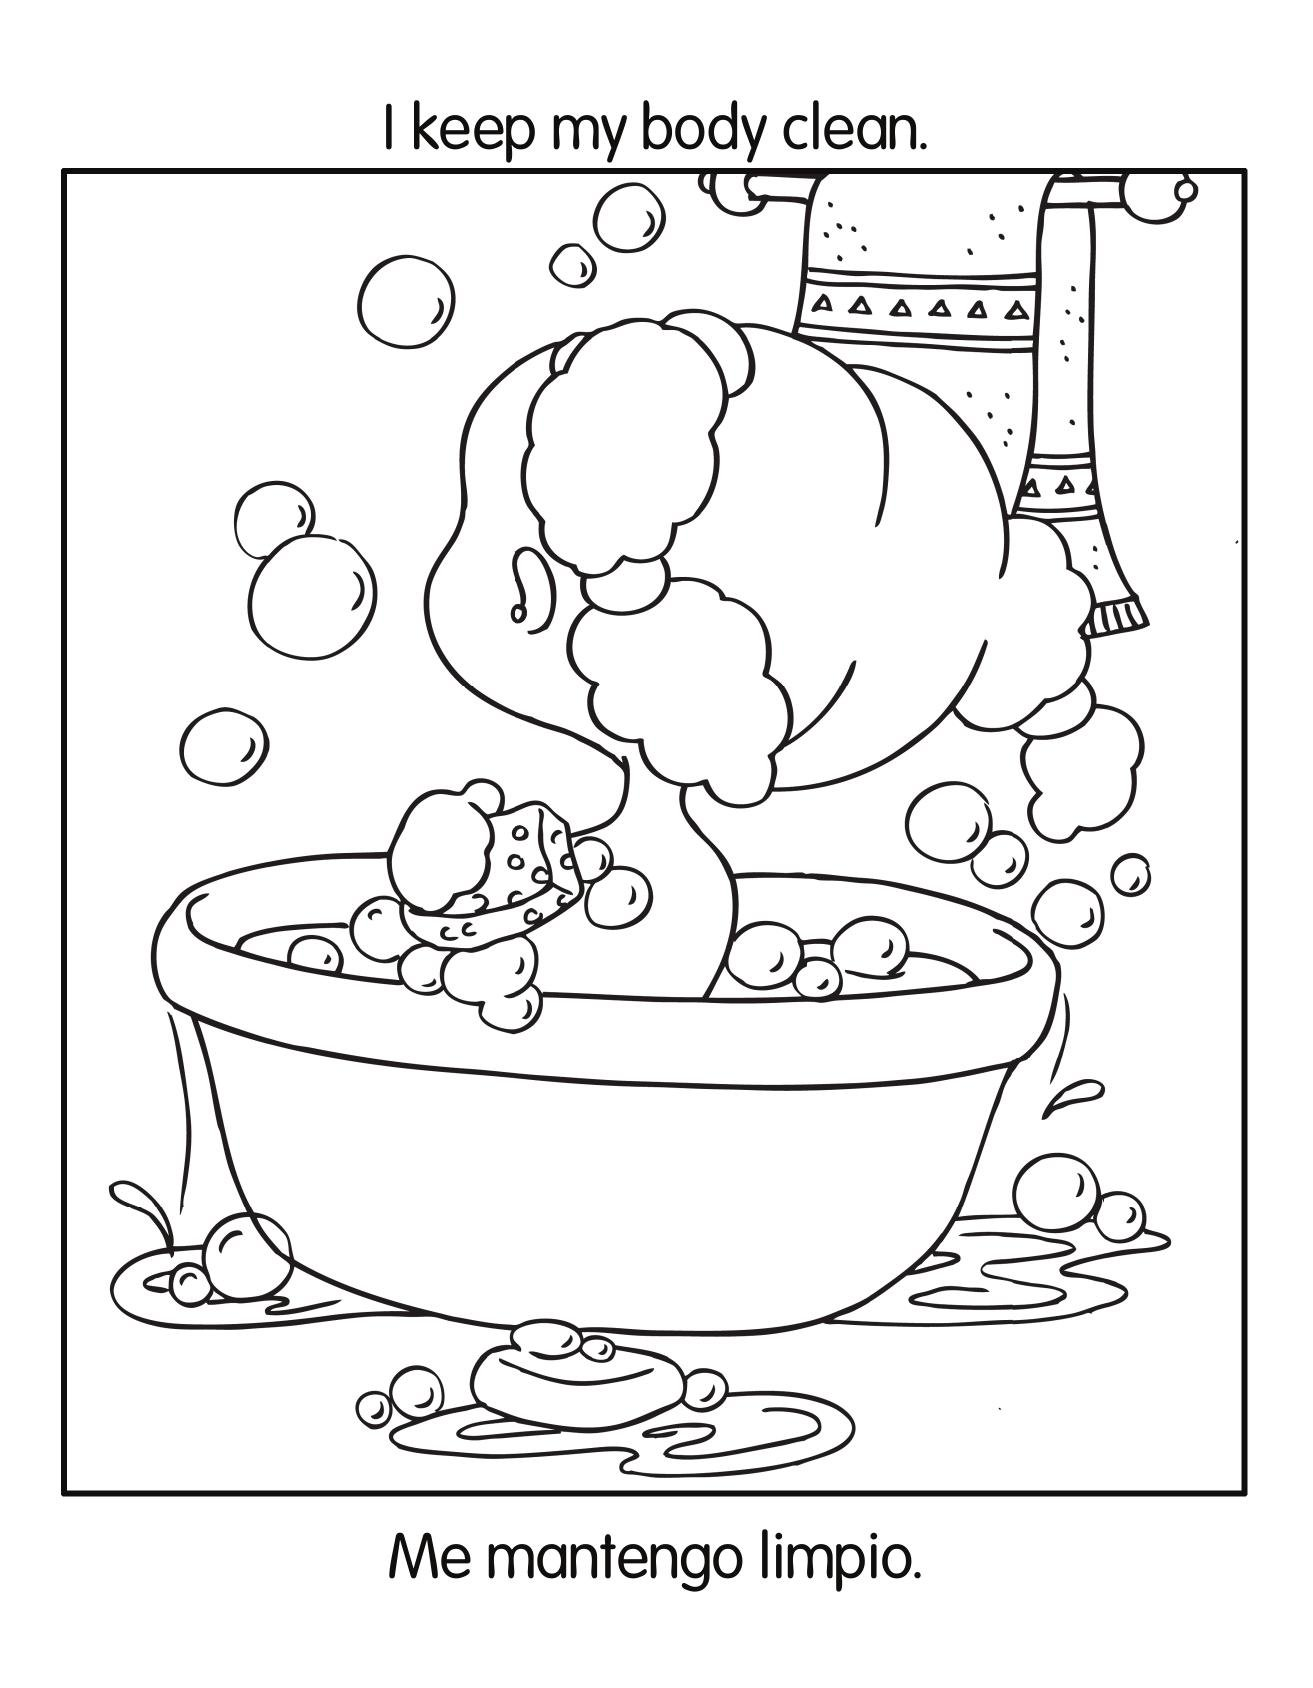 Download good habits coloring book health and nutrition for Healthy habits coloring pages